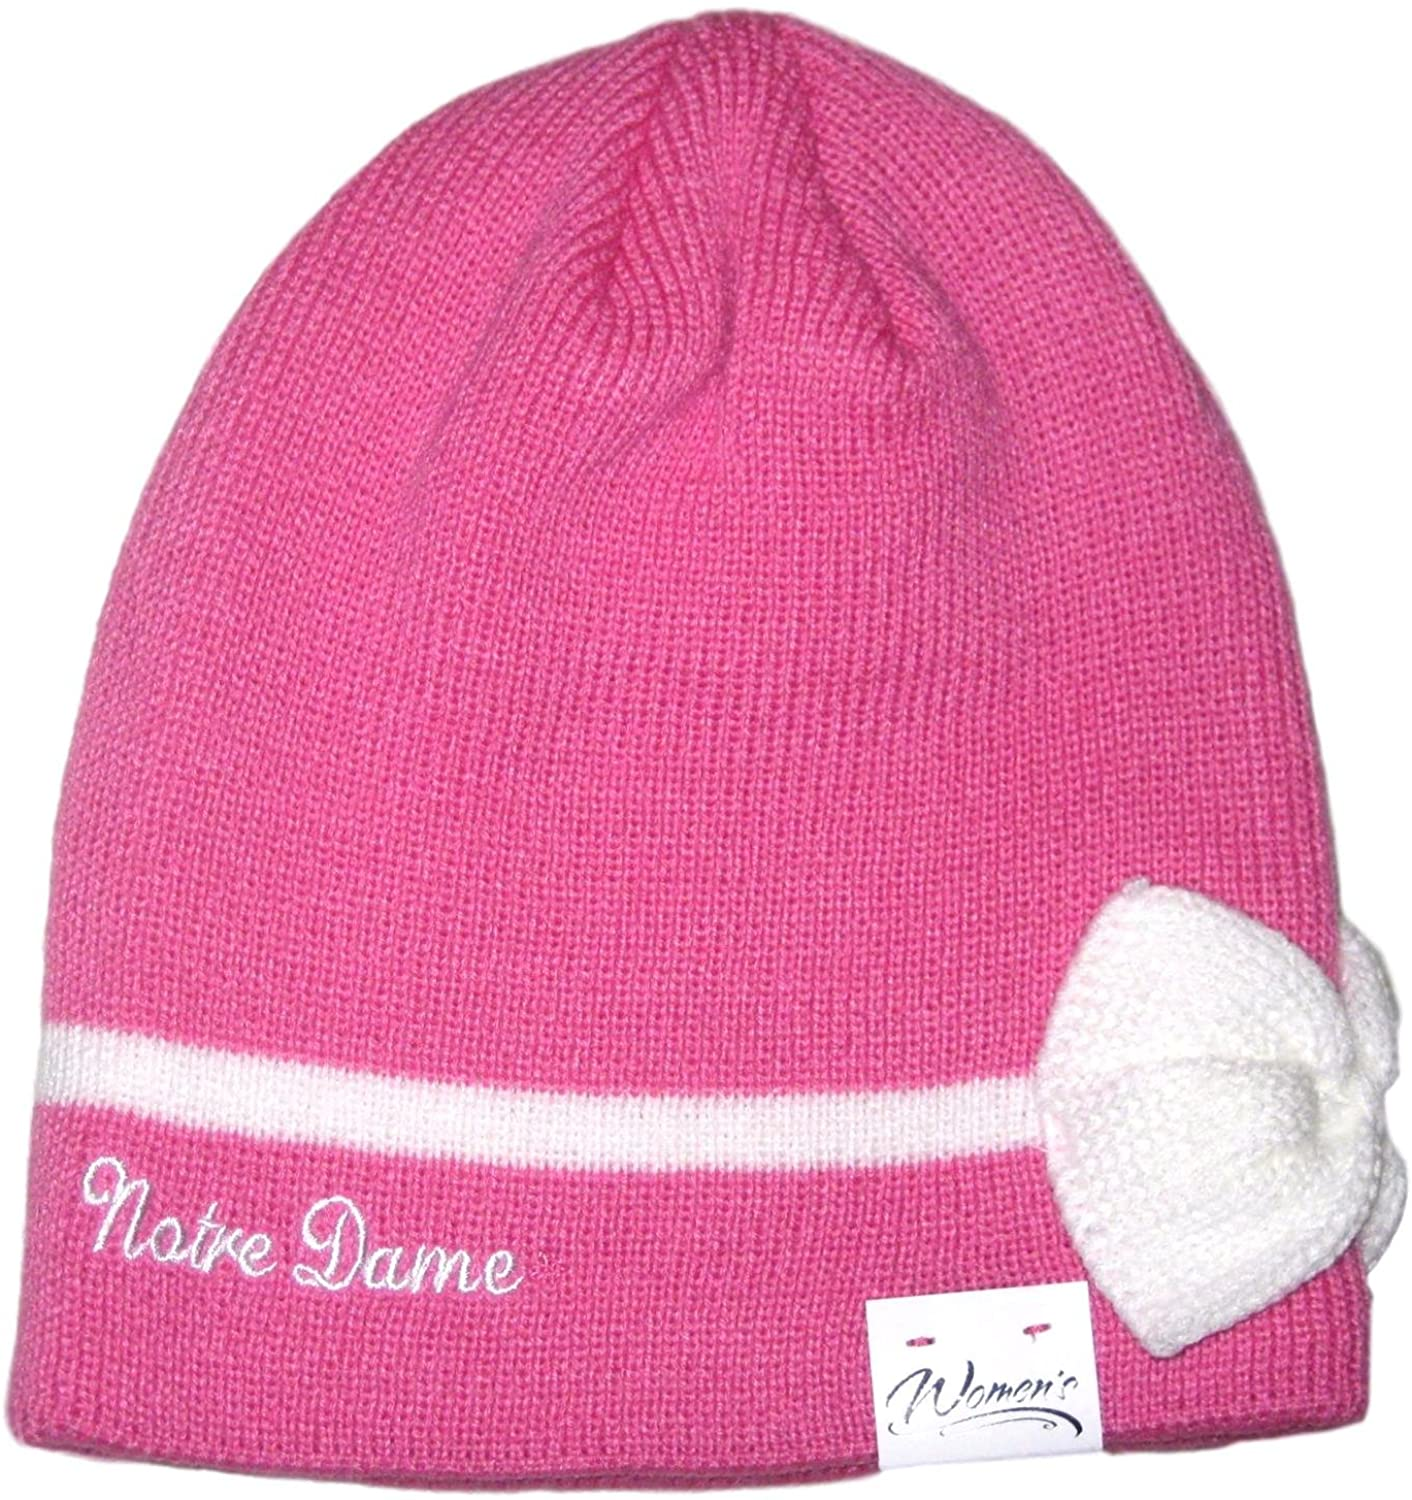 Fan Apparel Notre Dame Fighting Irish Pink with White Bow Beanie Hat Toque